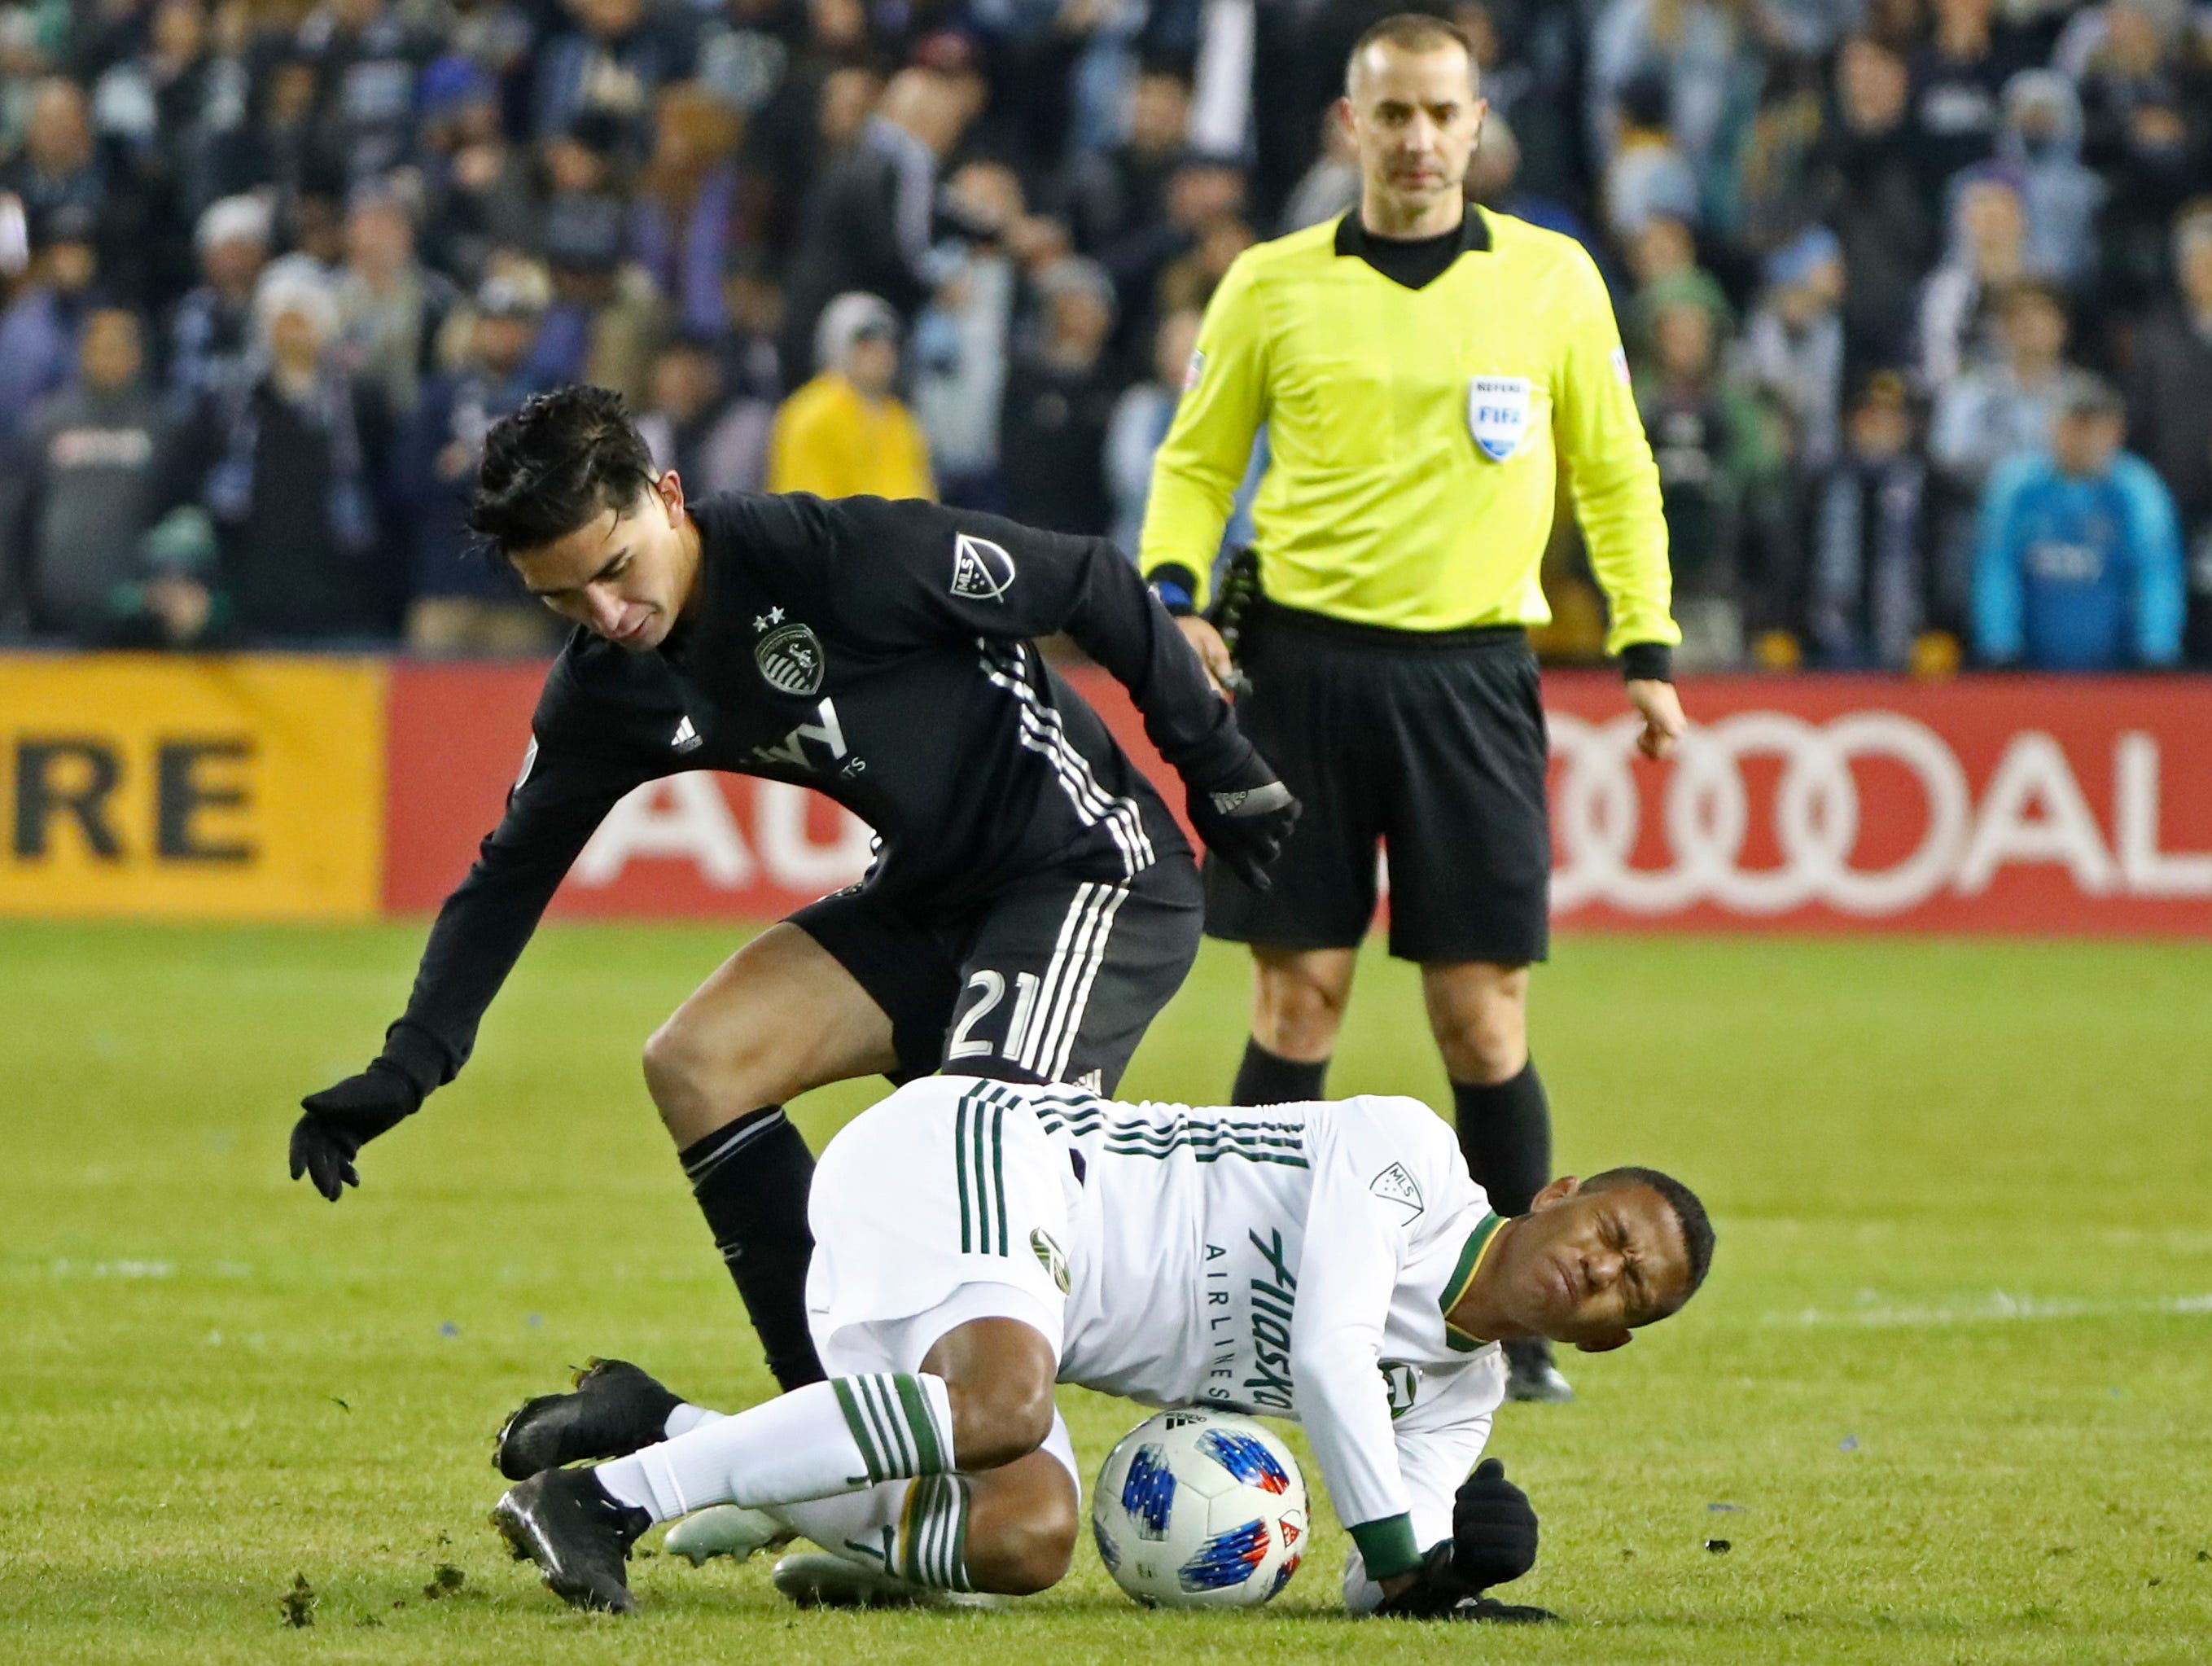 Nov 29, 2018; Kansas City, KS, USA; Sporting Kansas City midfielder Felipe Gutierrez (21) fights for the ball with Portland Timbers forward Andy Polo (11) during the second half in the second leg of the MLS Western Conference Championship at Children's Mercy Park. Mandatory Credit: Jay Biggerstaff-USA TODAY Sports